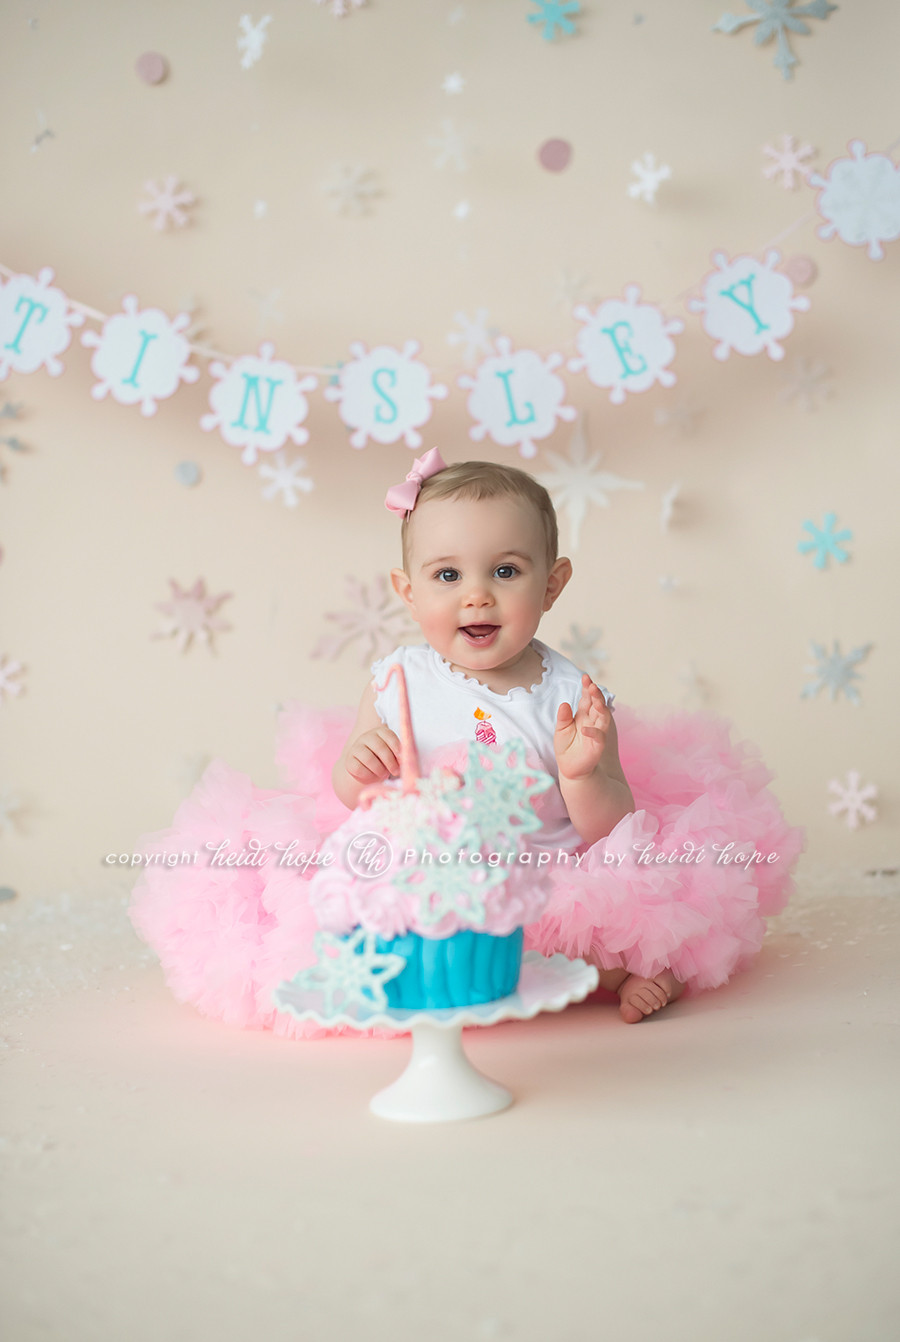 Best ideas about 1st Birthday Smash Cake . Save or Pin A winter wonderland cake smash with first birthday girl T Now.